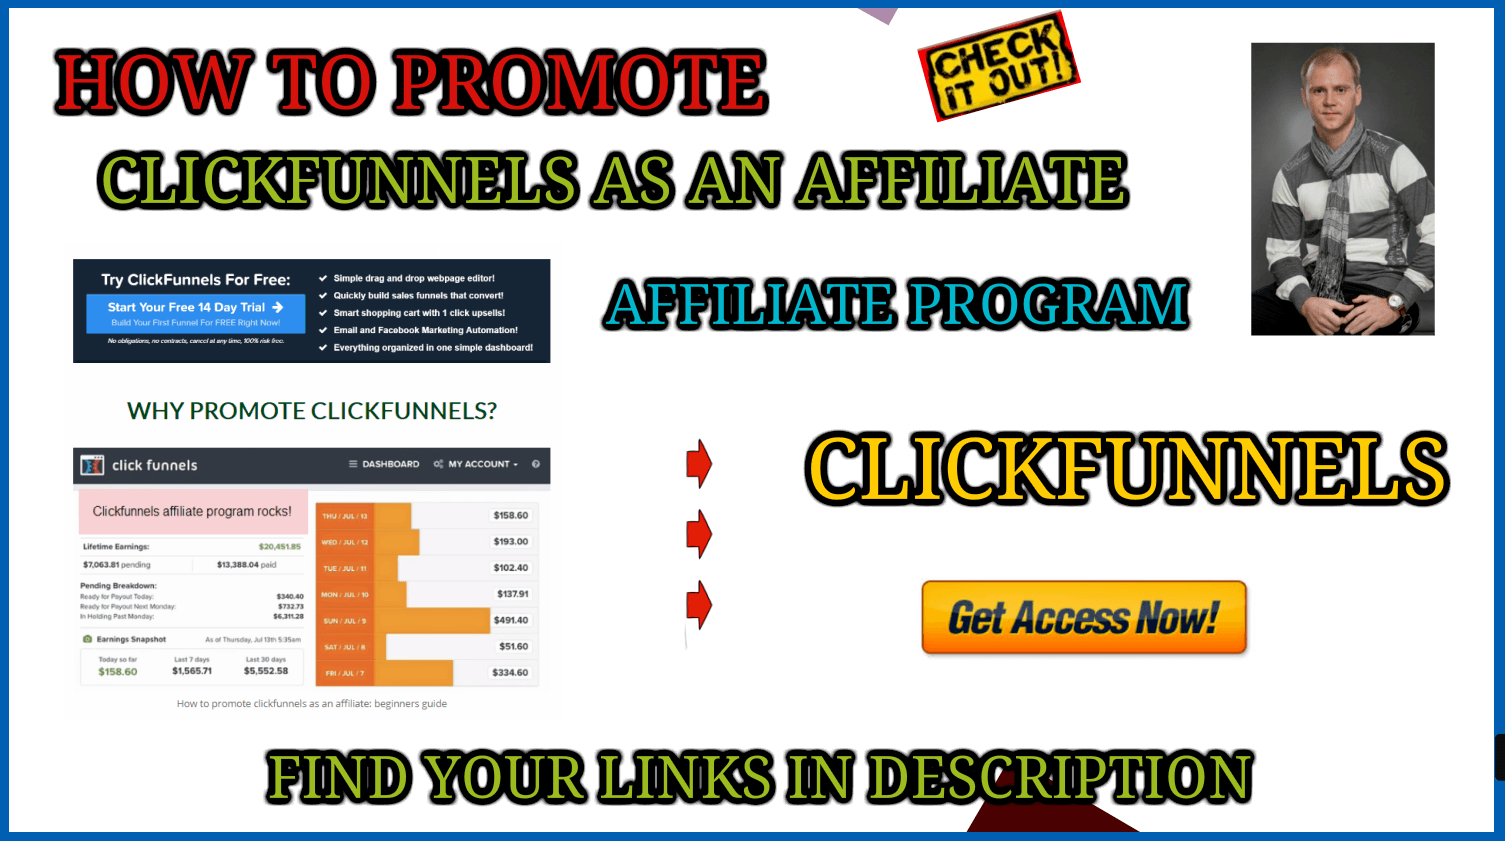 Getting The Clickfunnels Facebook Ads To Work